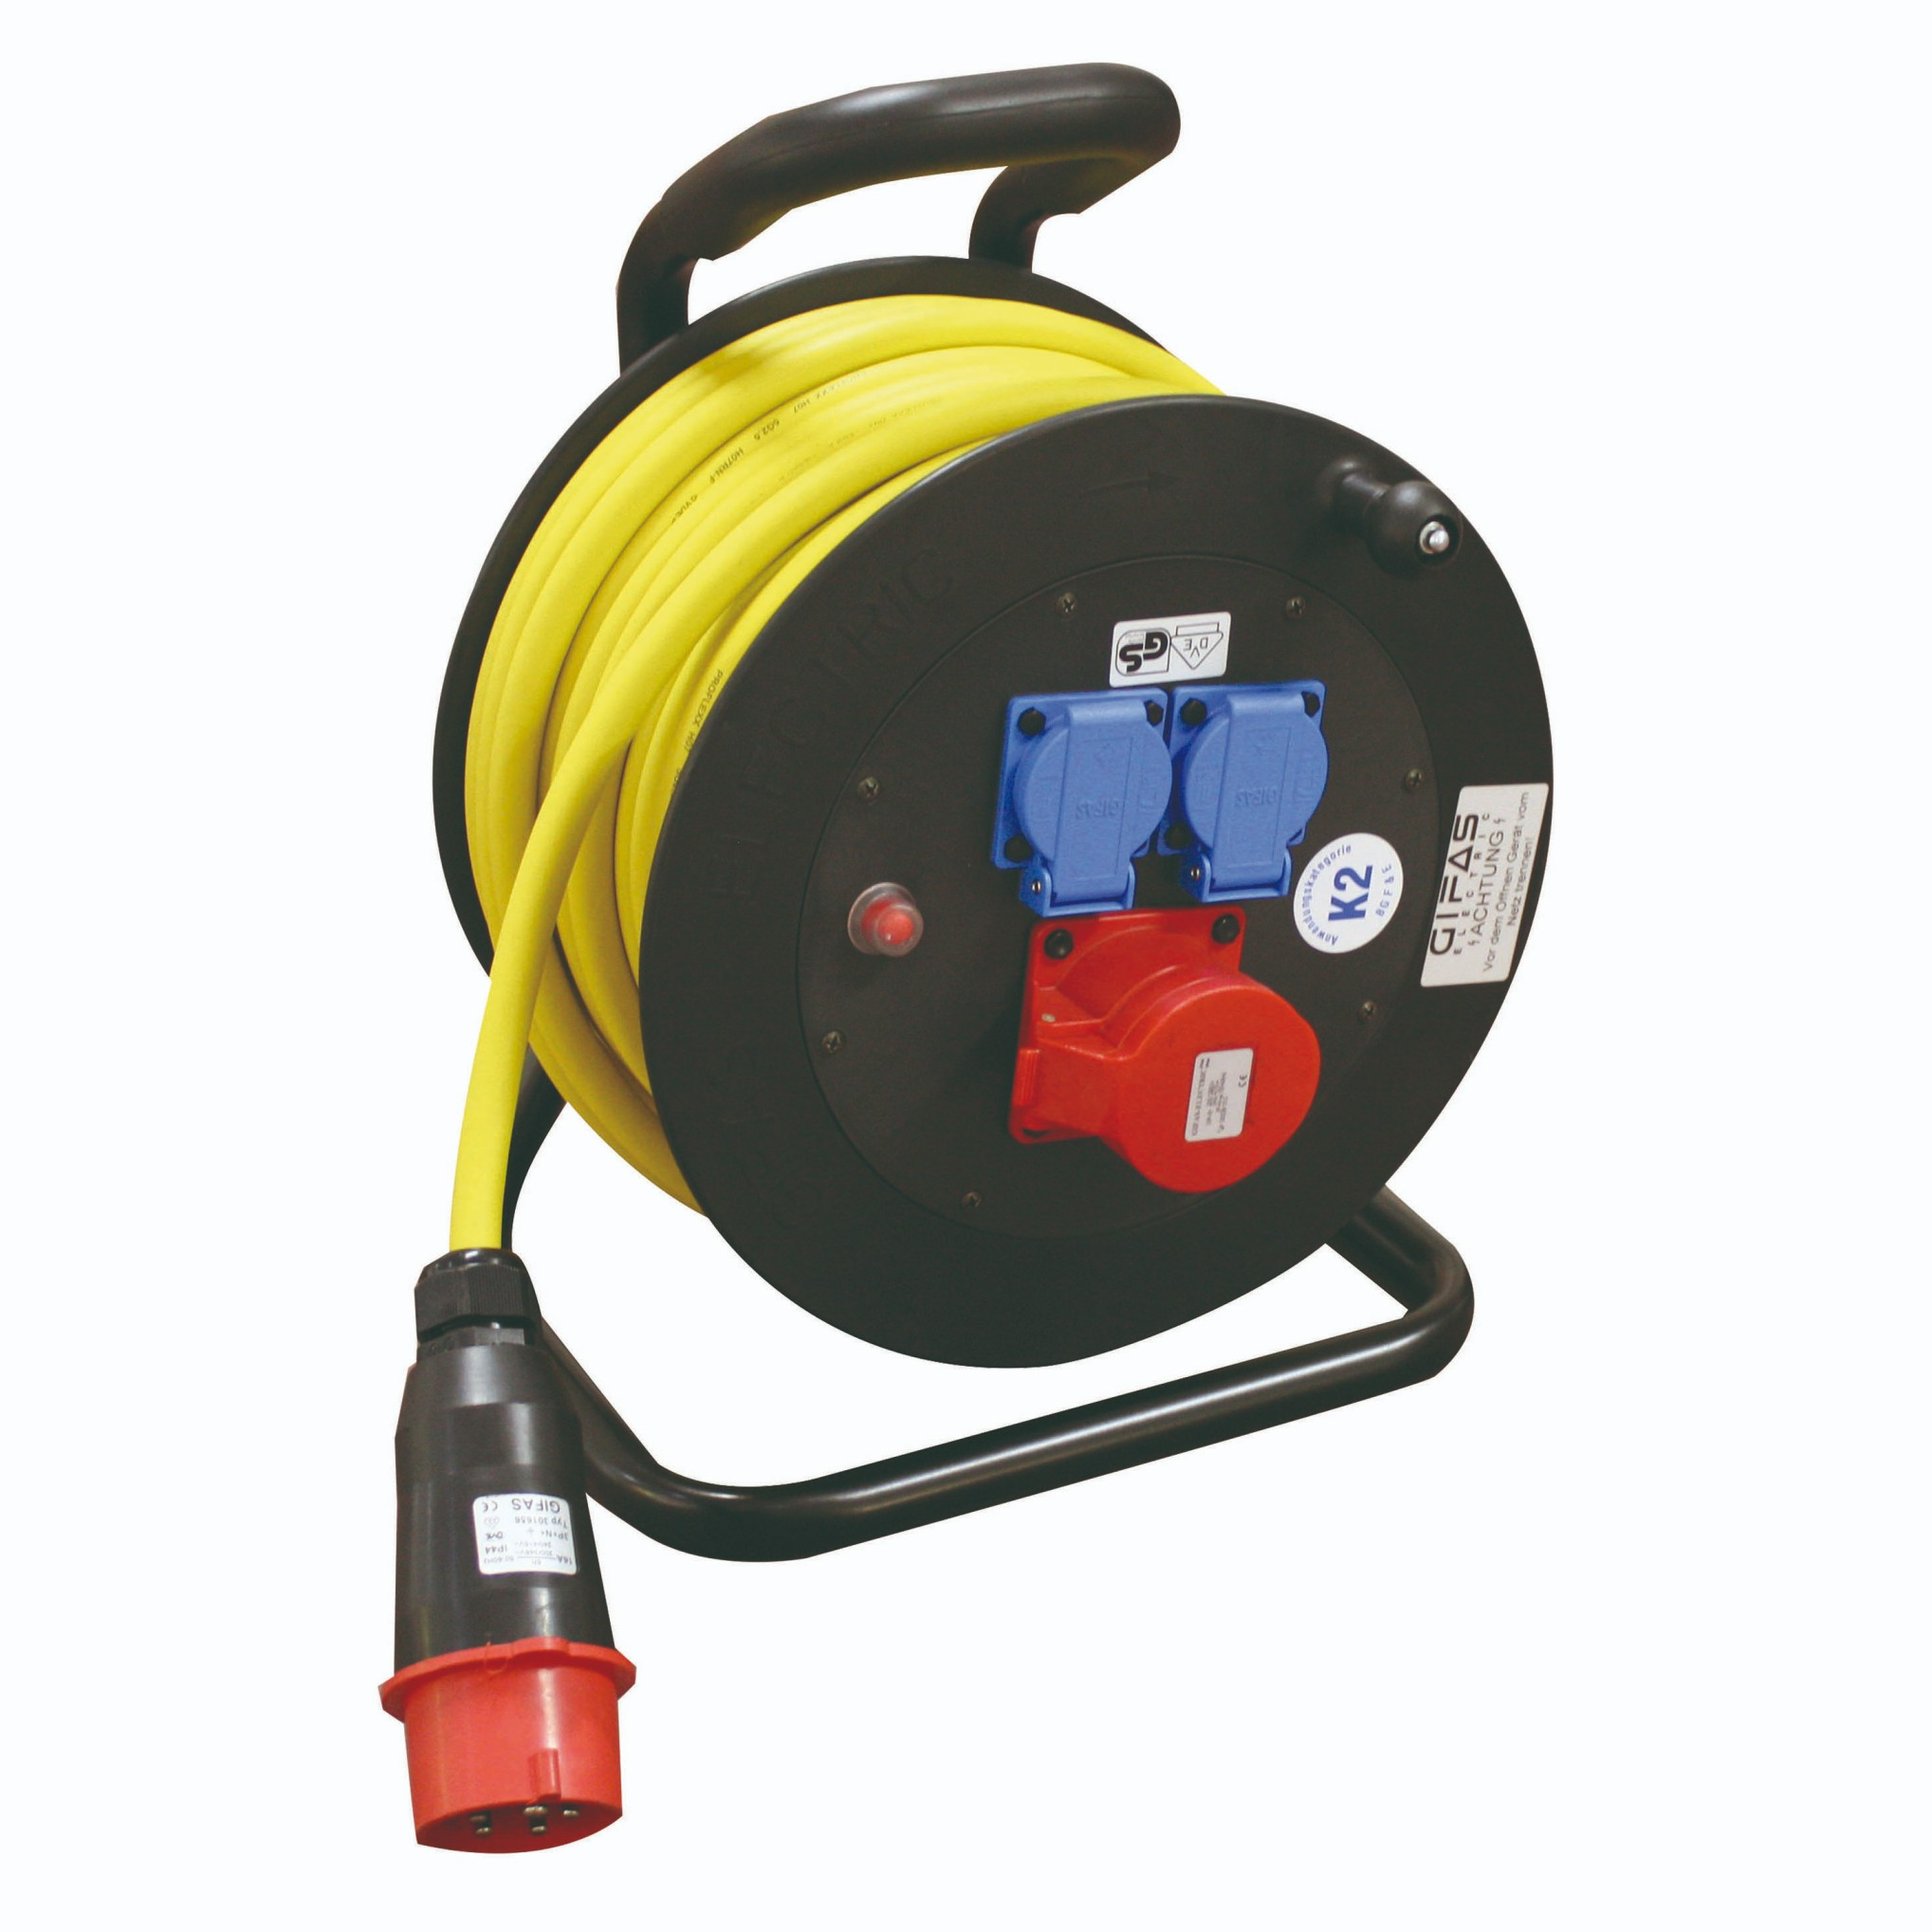 GIFAS Solid Rubber Cable Reel - Type 502 (283578, 259594)